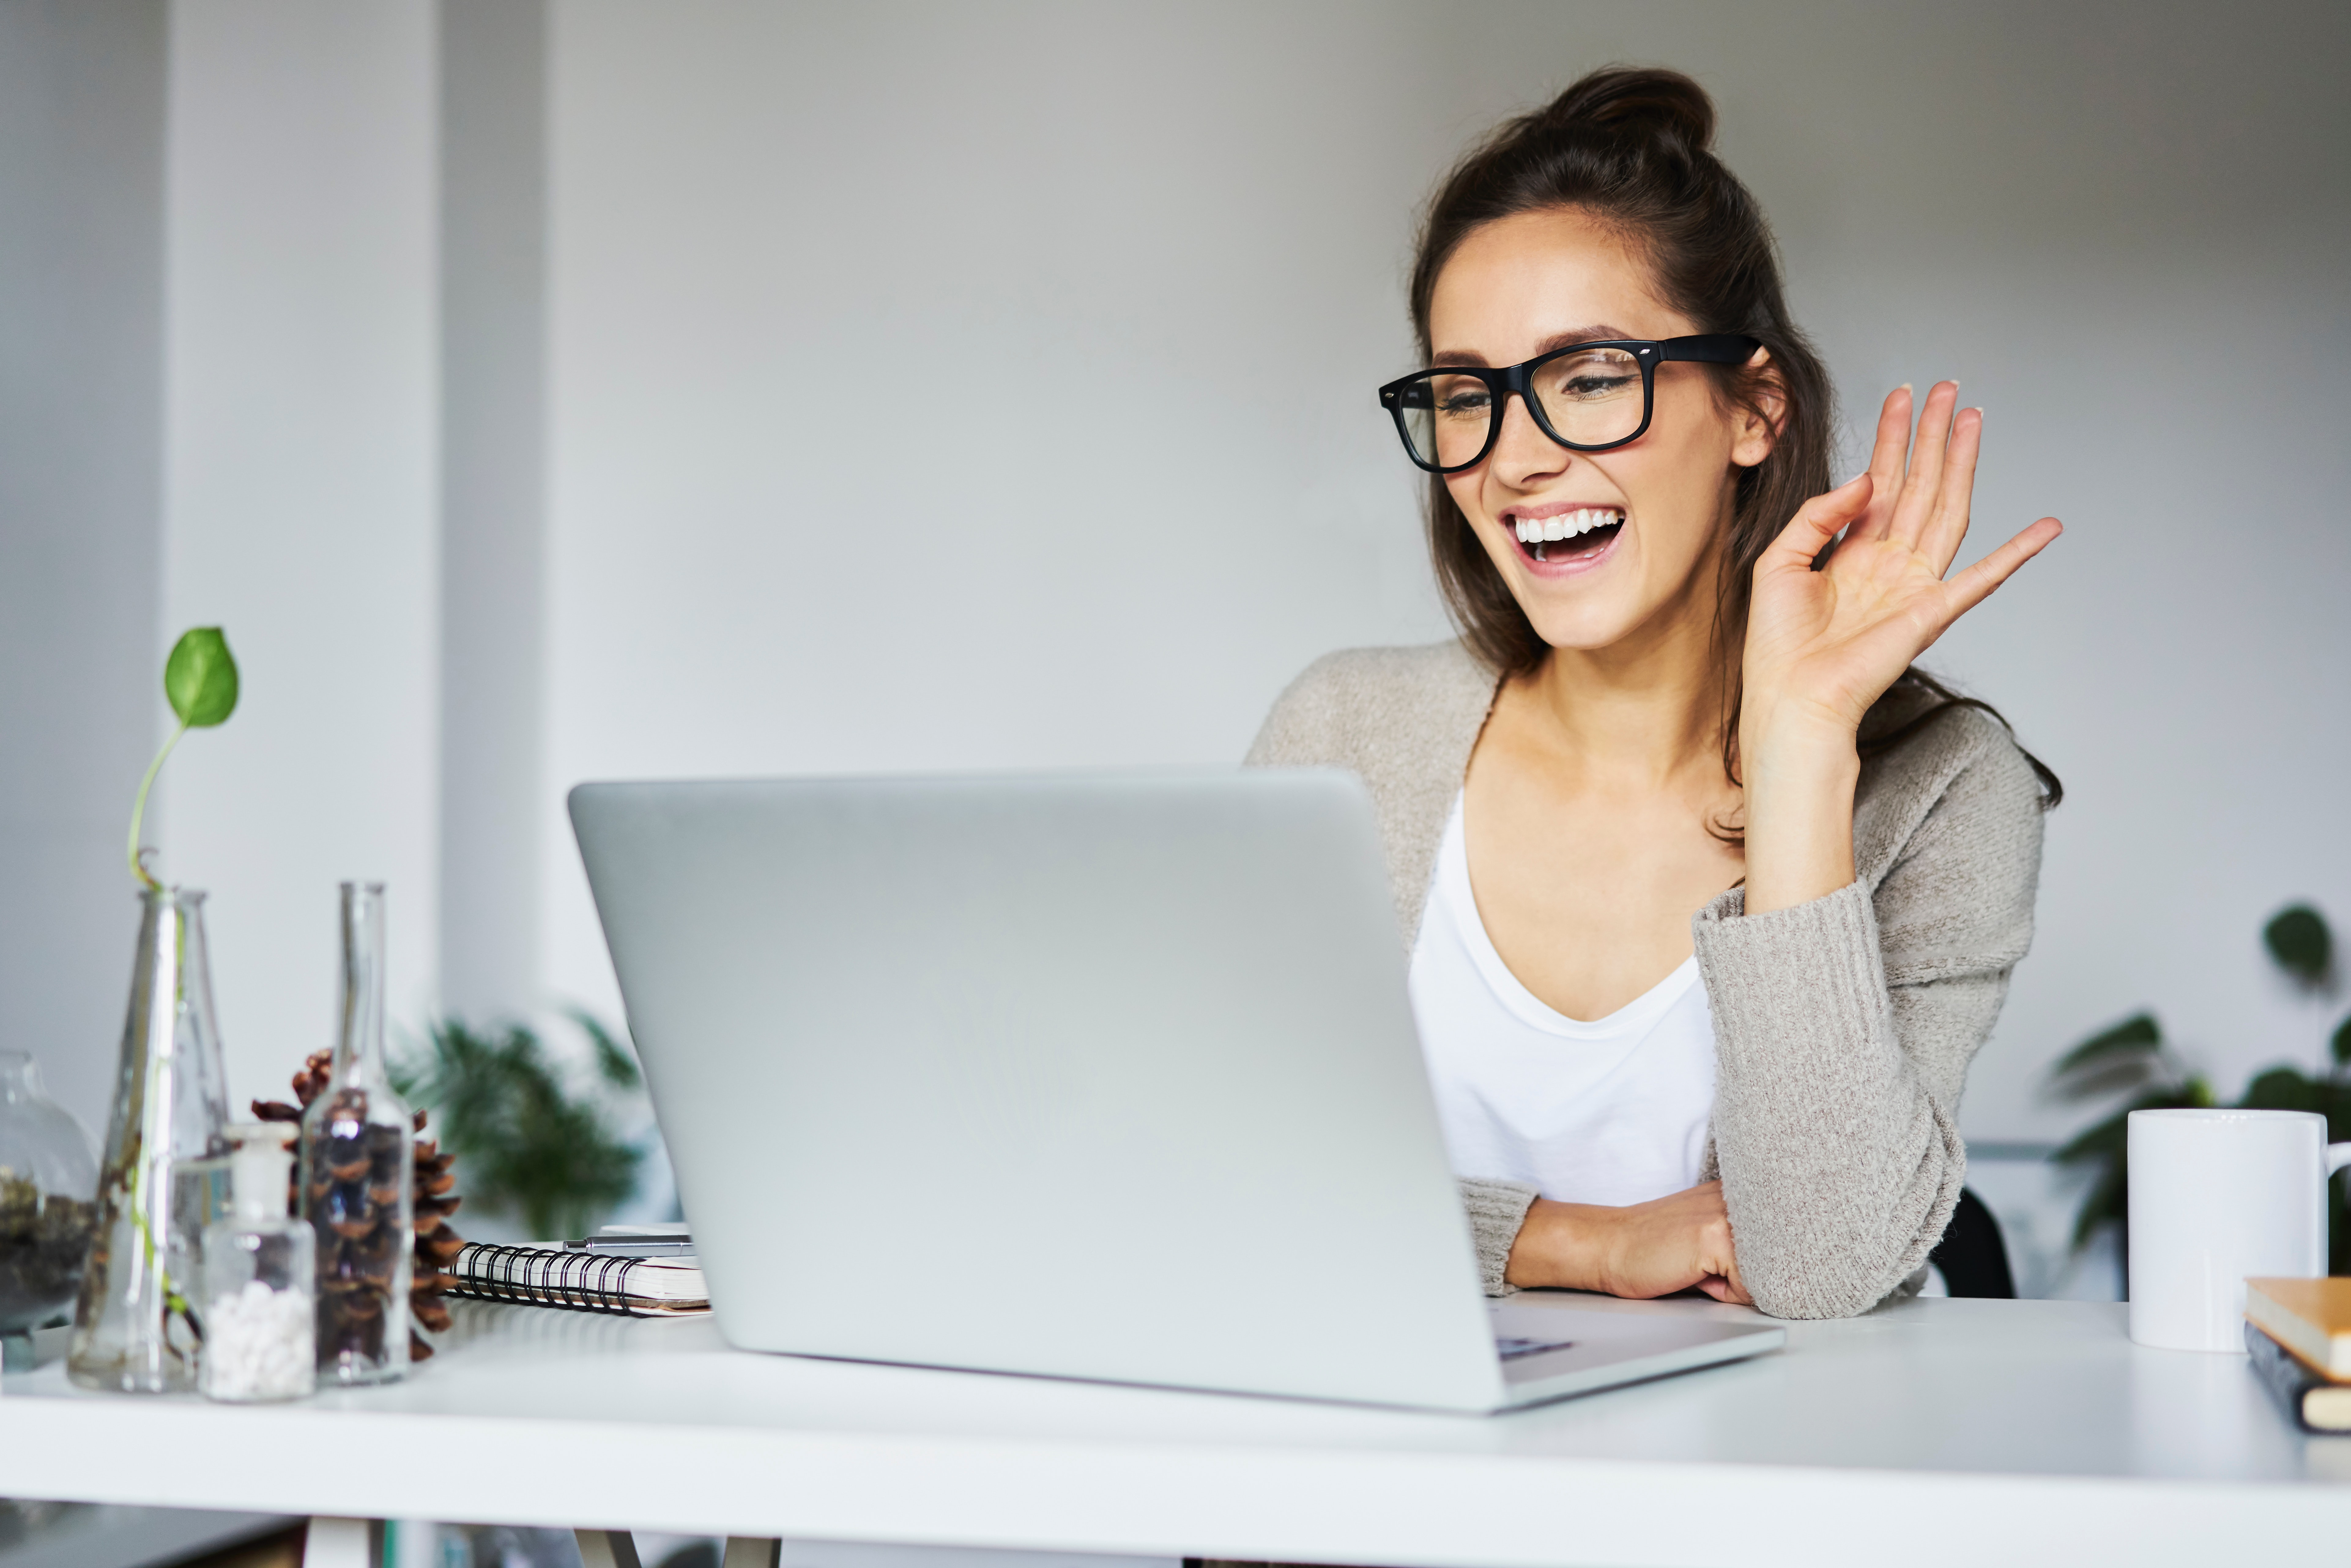 8 Zoom Hacks To Try During Your Next Work Meeting Or Virtual Happy